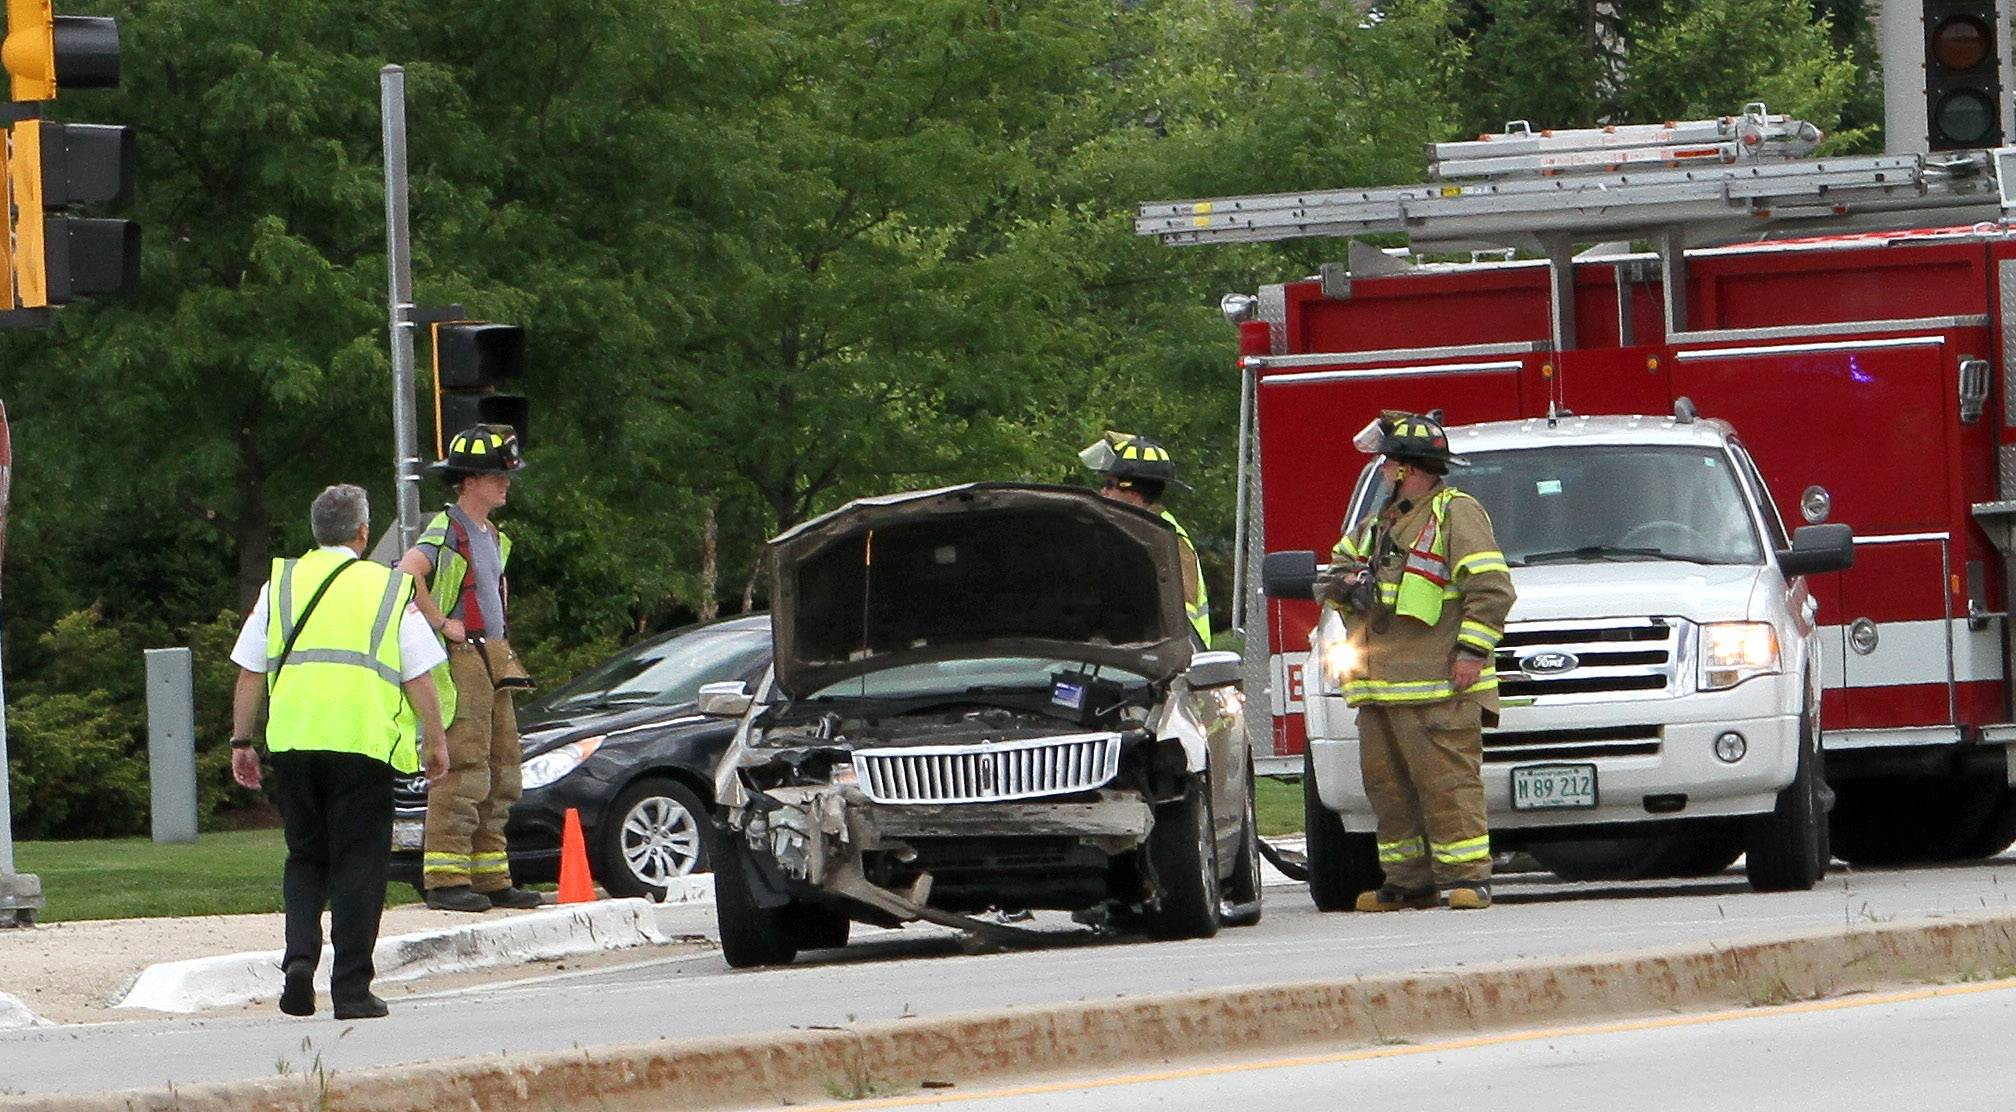 One man was seriously injured and two other people were hurt Thursday in a crash at Warrenville Road and Mill Street in Warrenville.